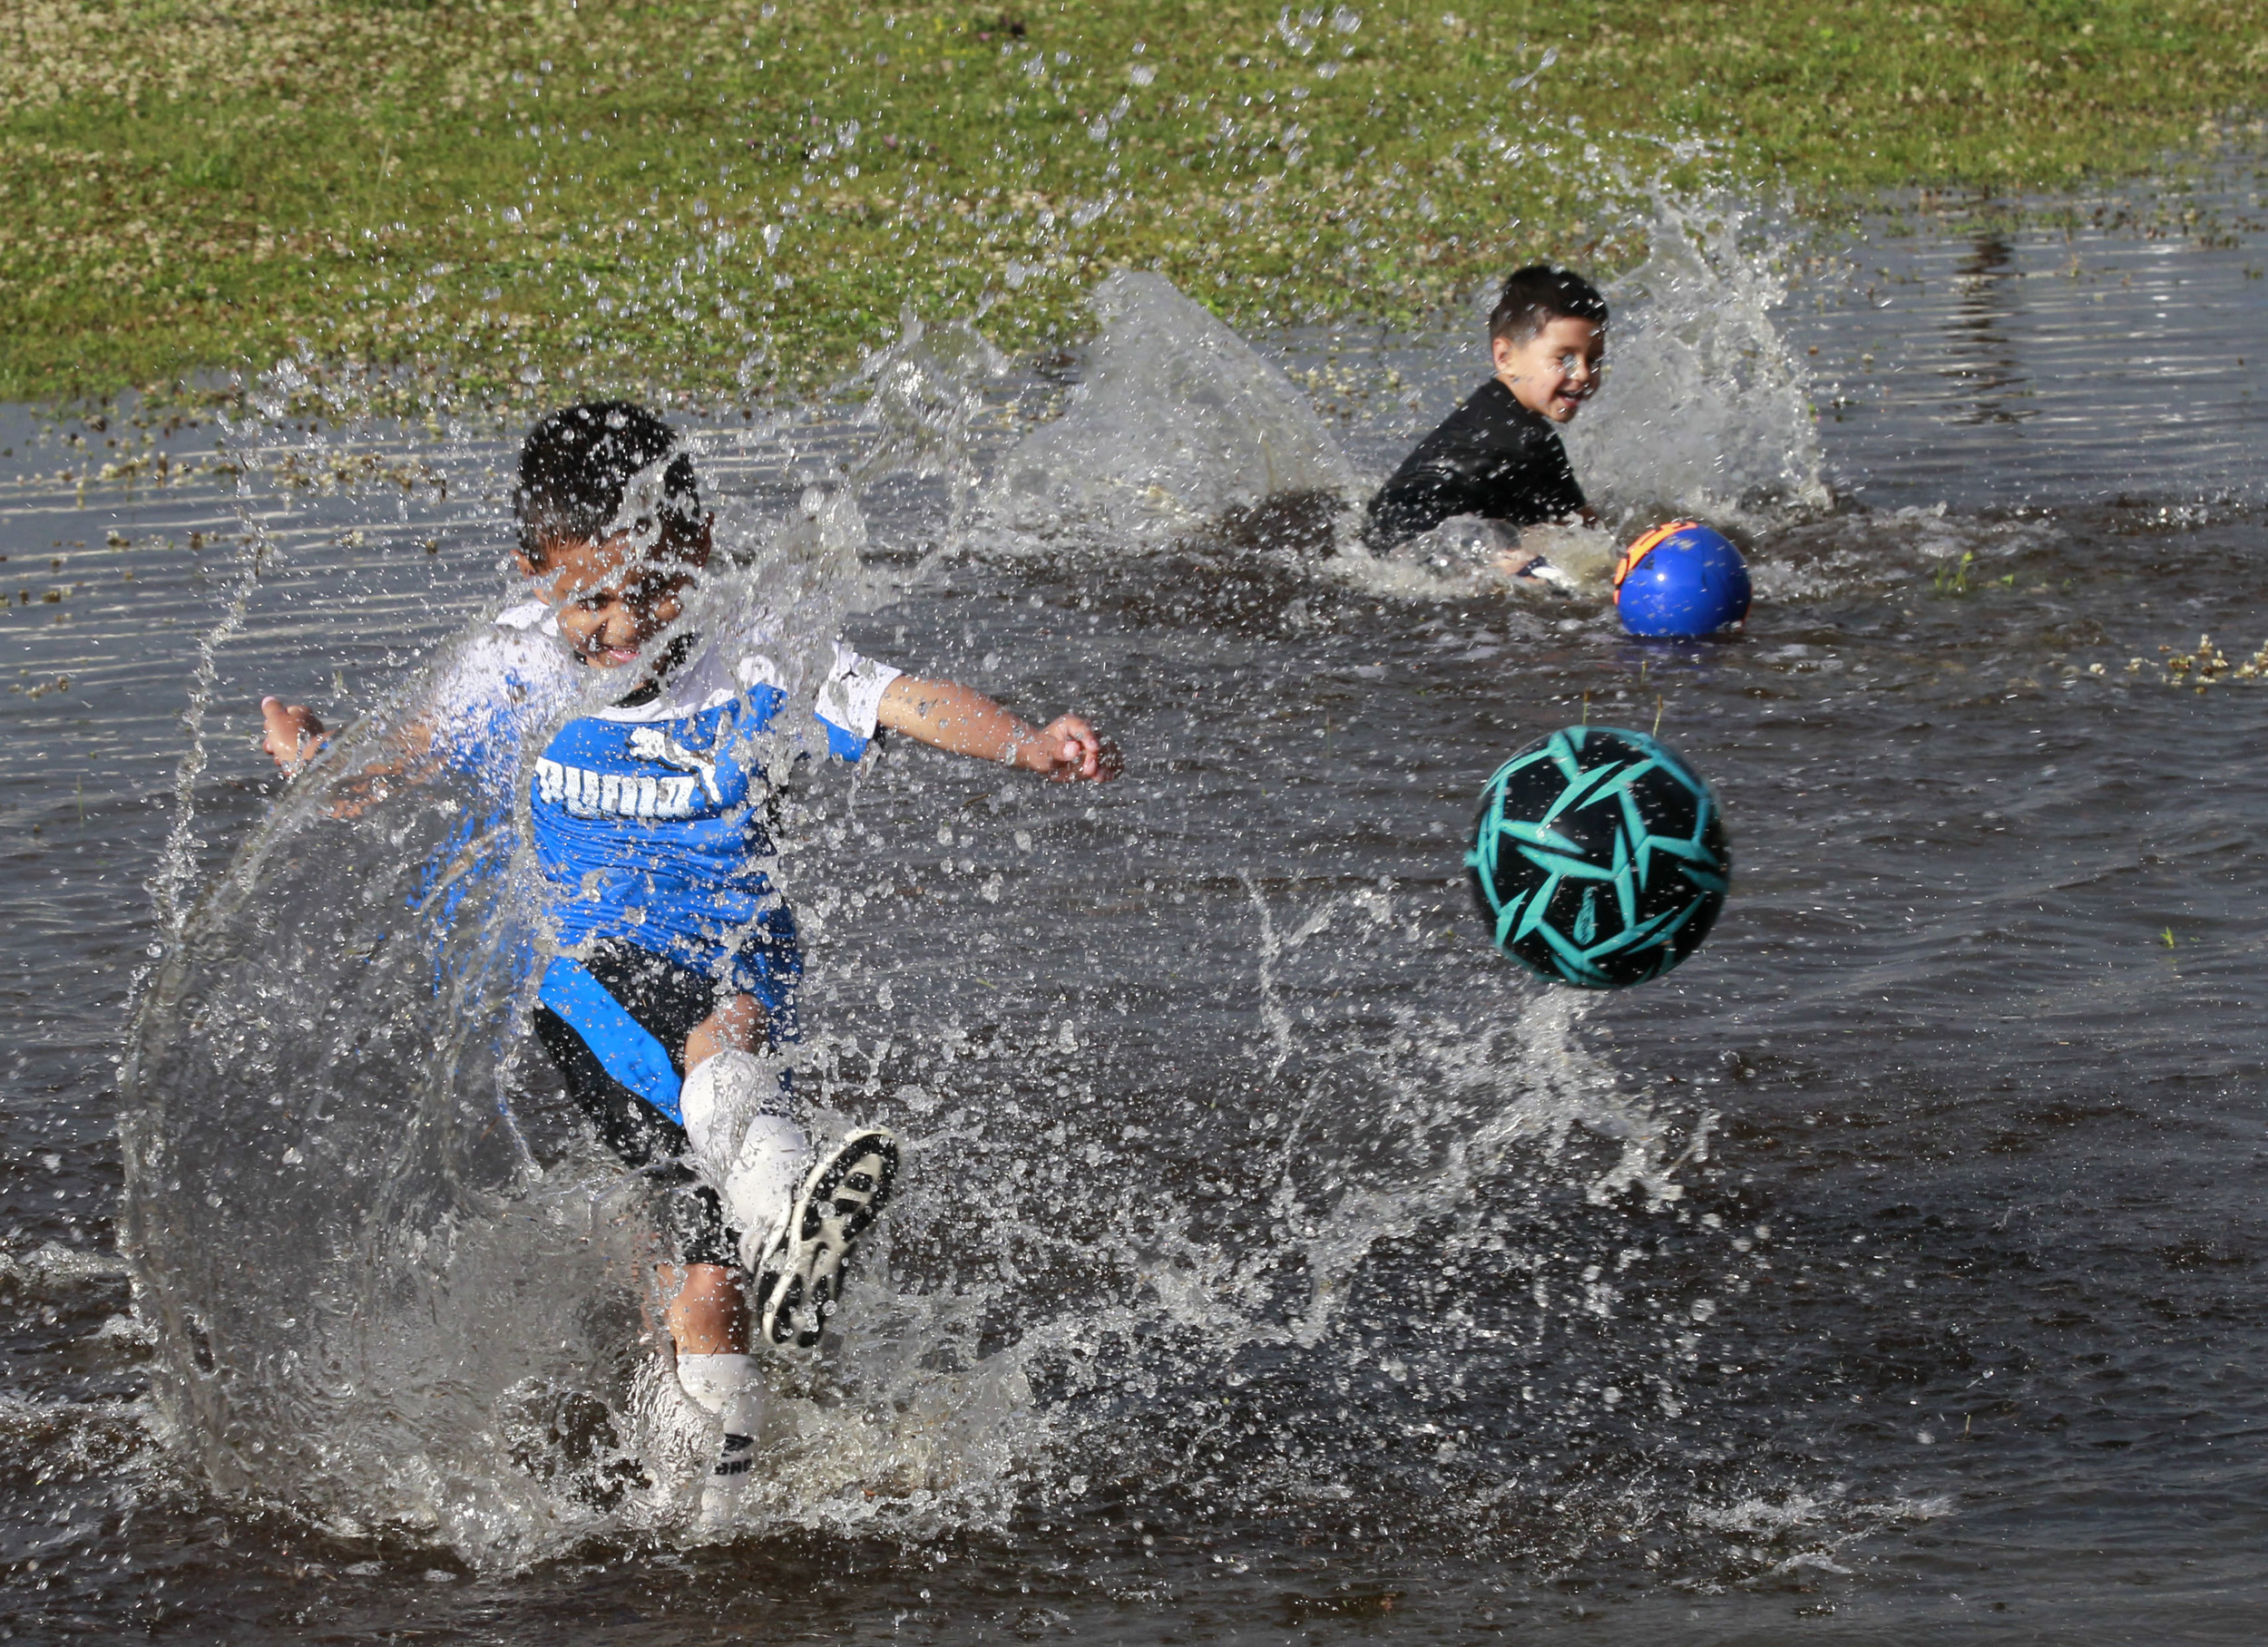 Toledoans Diego Mosqueda, 7, and his brother Tavio Mosqueda, 4, play soccer in the flooded front yard of DeVeaux Elementary School in Toledo, Ohio. Twenty minutes of a steady downpour created a small pond big enough to attract the young athletes.  ©2014/Toledo Blade/Lori King